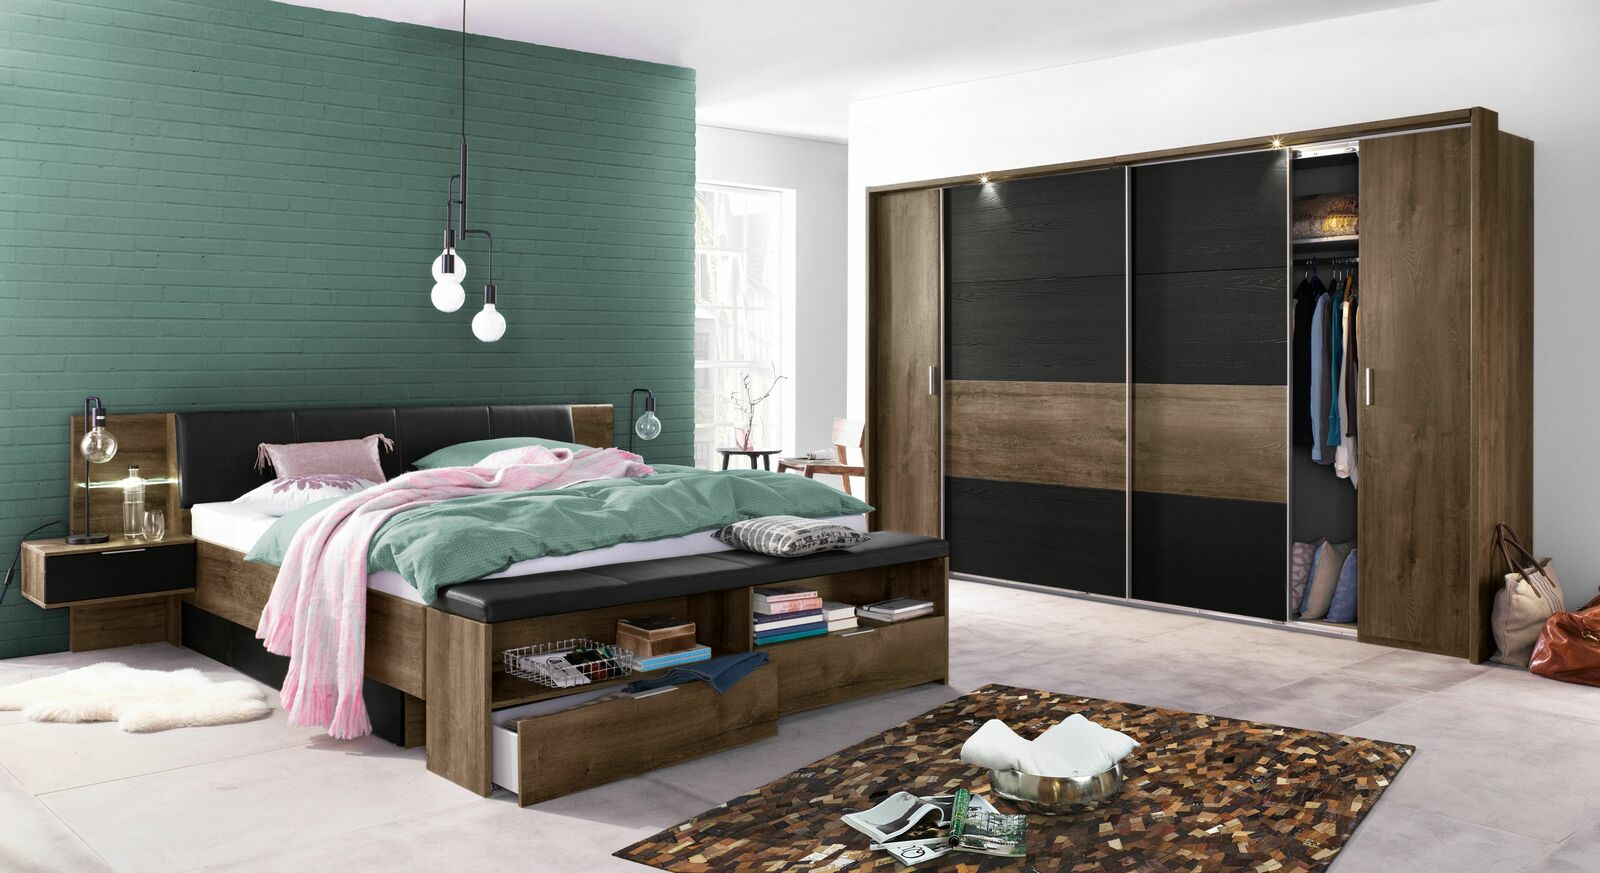 bettbank gepolstert schlammeiche dekor mit schubladen gallinaro. Black Bedroom Furniture Sets. Home Design Ideas